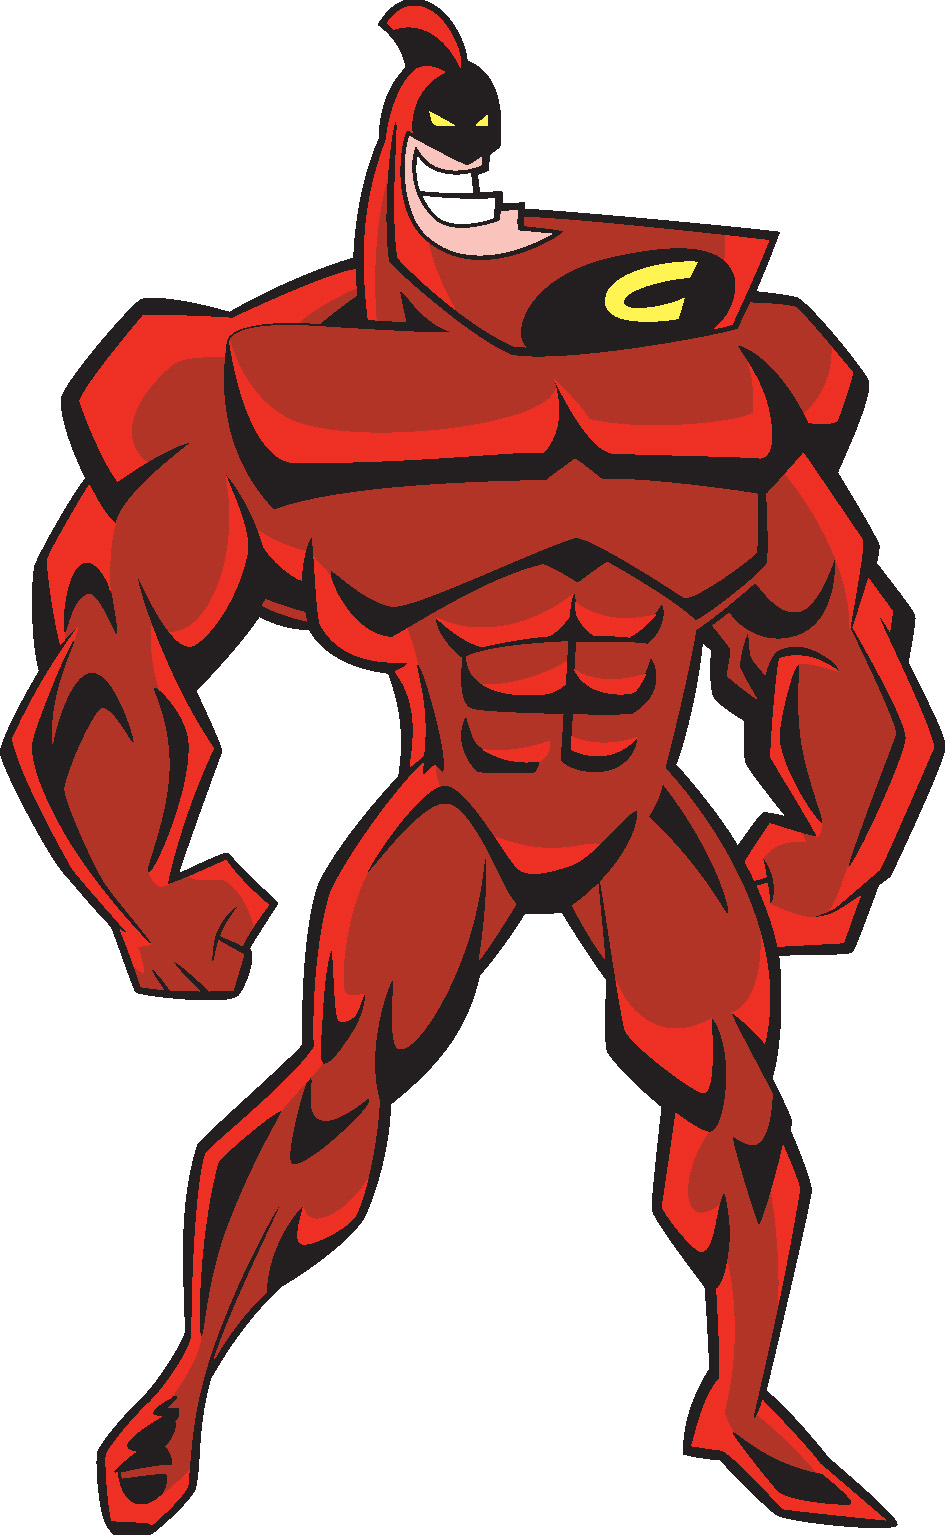 The Crimson Chin